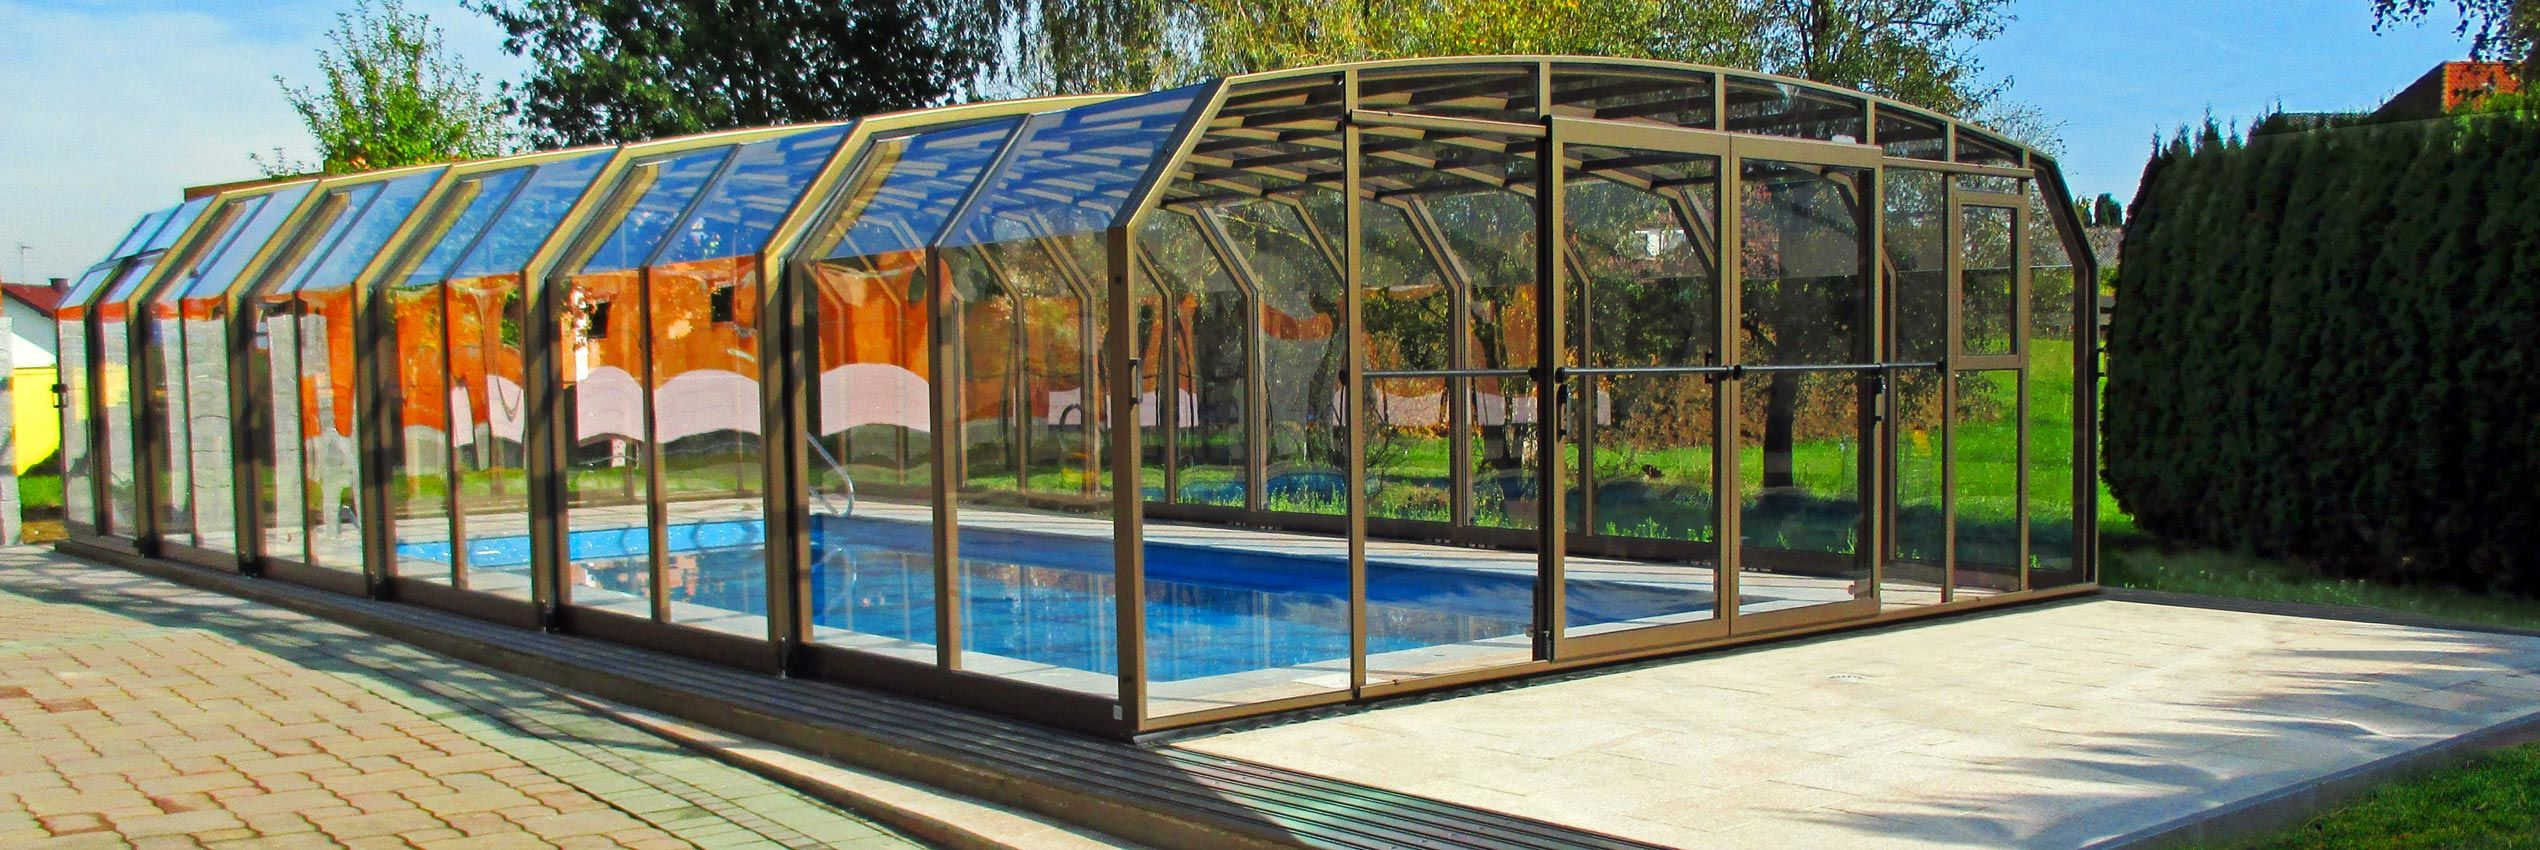 High line retractable pool enclosures and pool covers sunrooms Retractable swimming pool enclosures